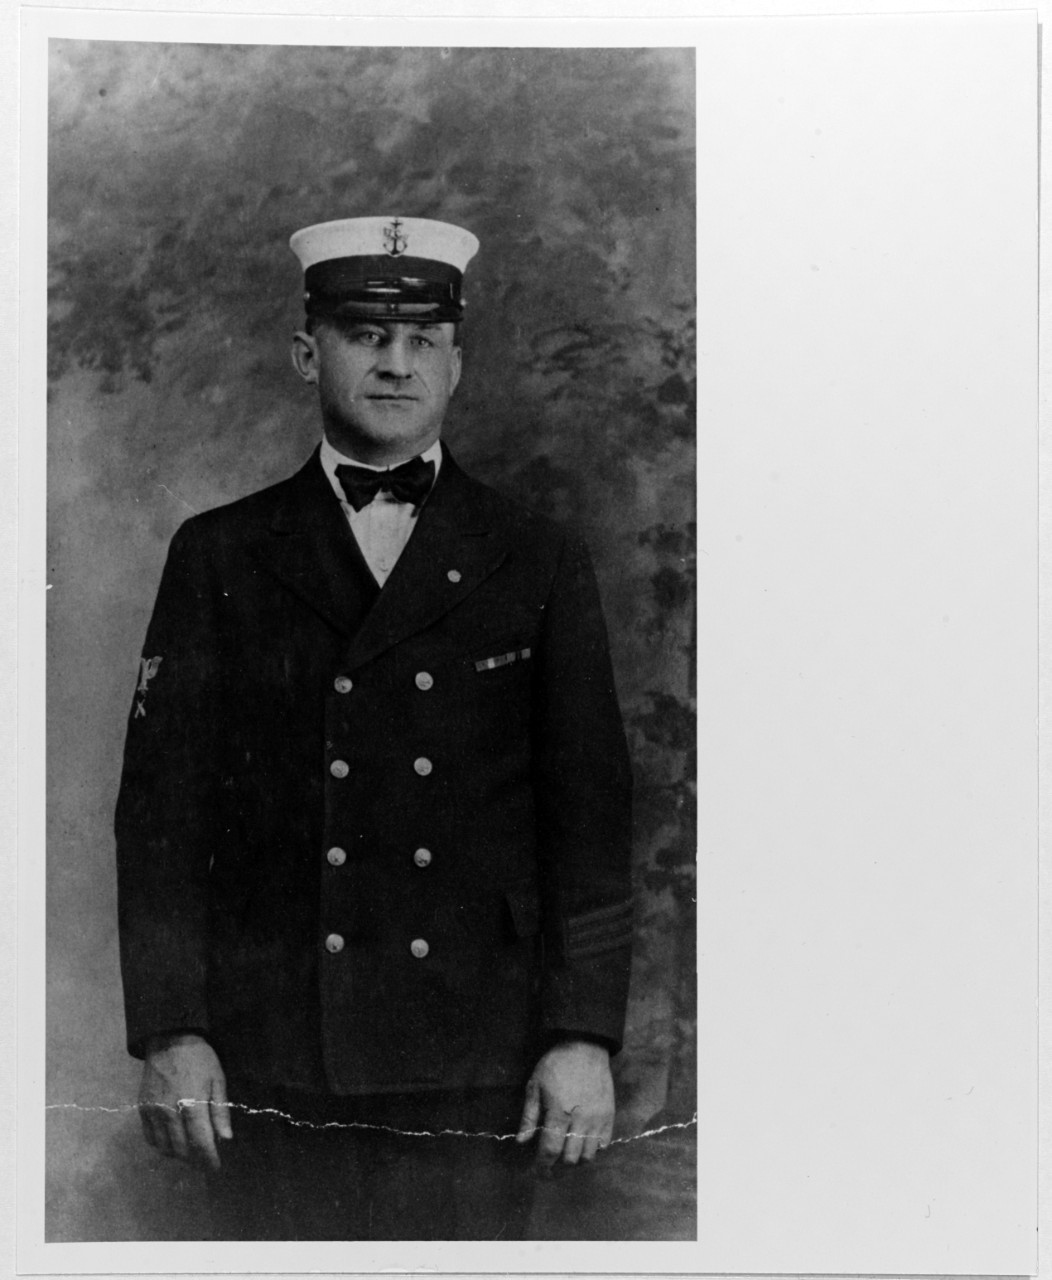 John P. Conroy, Chief Petty Officer, USN